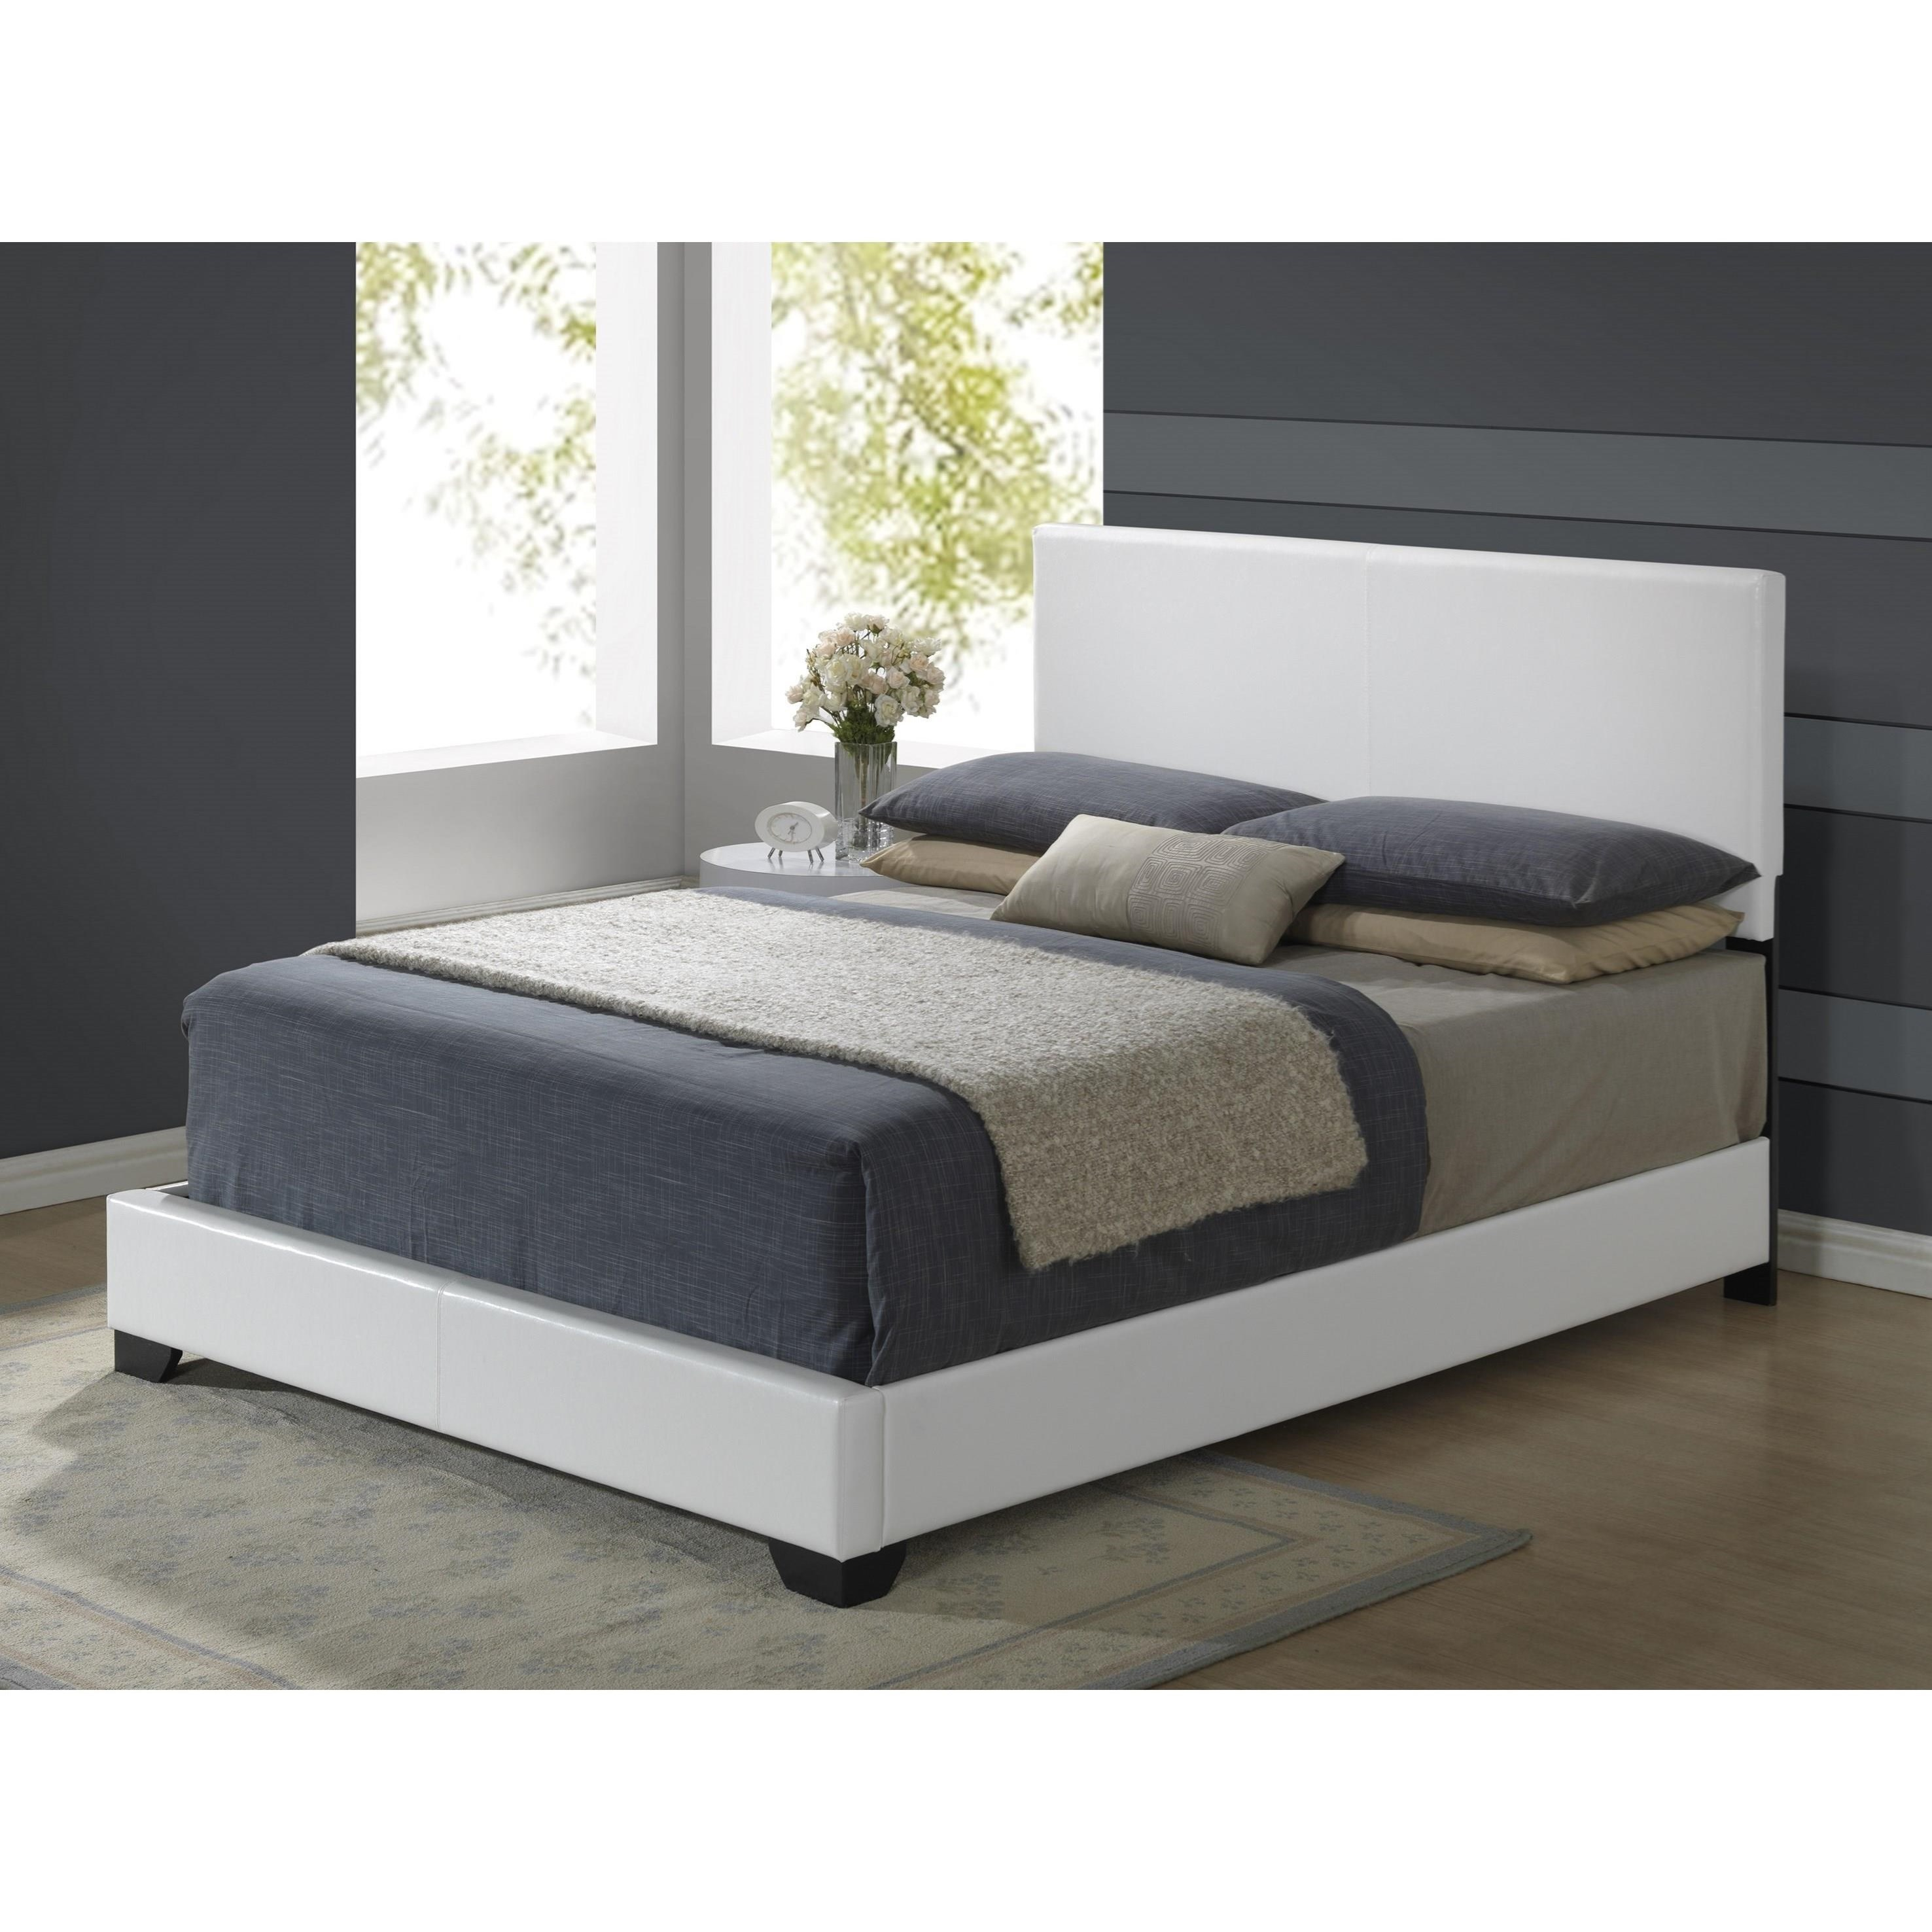 8103 Upholstered Queen Bed by Global Furniture at Dream Home Interiors